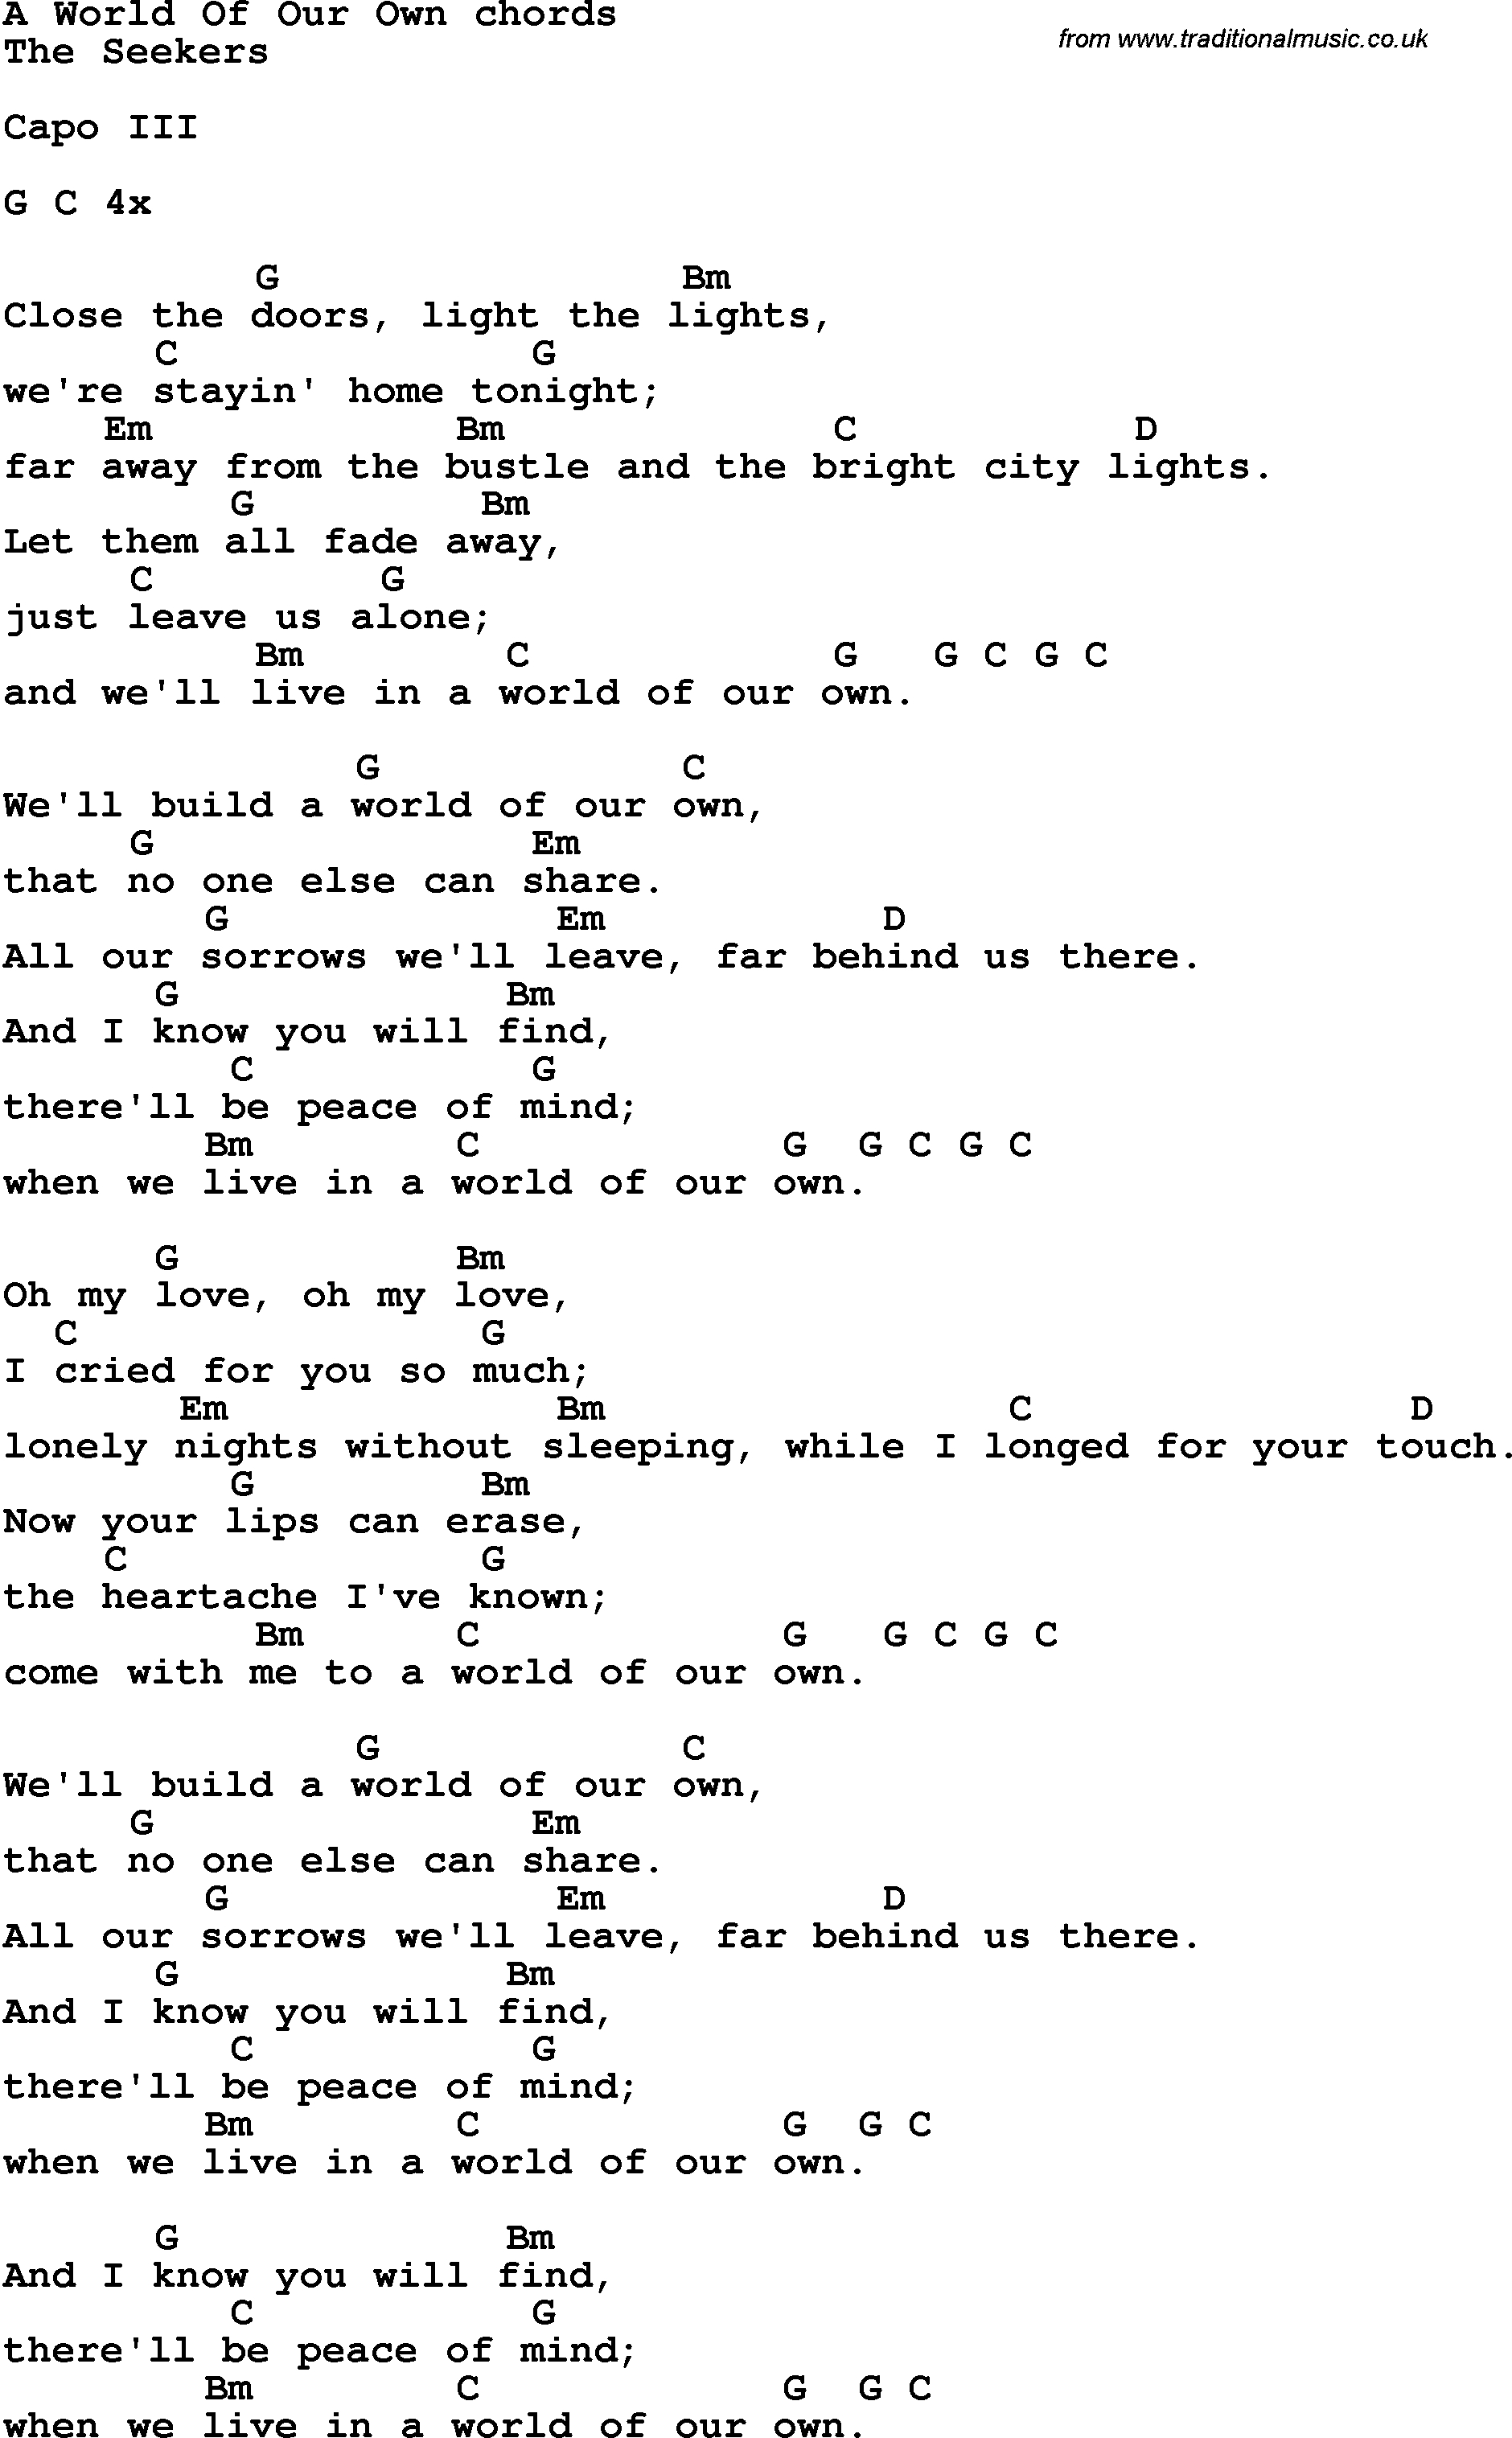 Your Song Chords Song Lyrics With Guitar Chords For A World Of Our Own